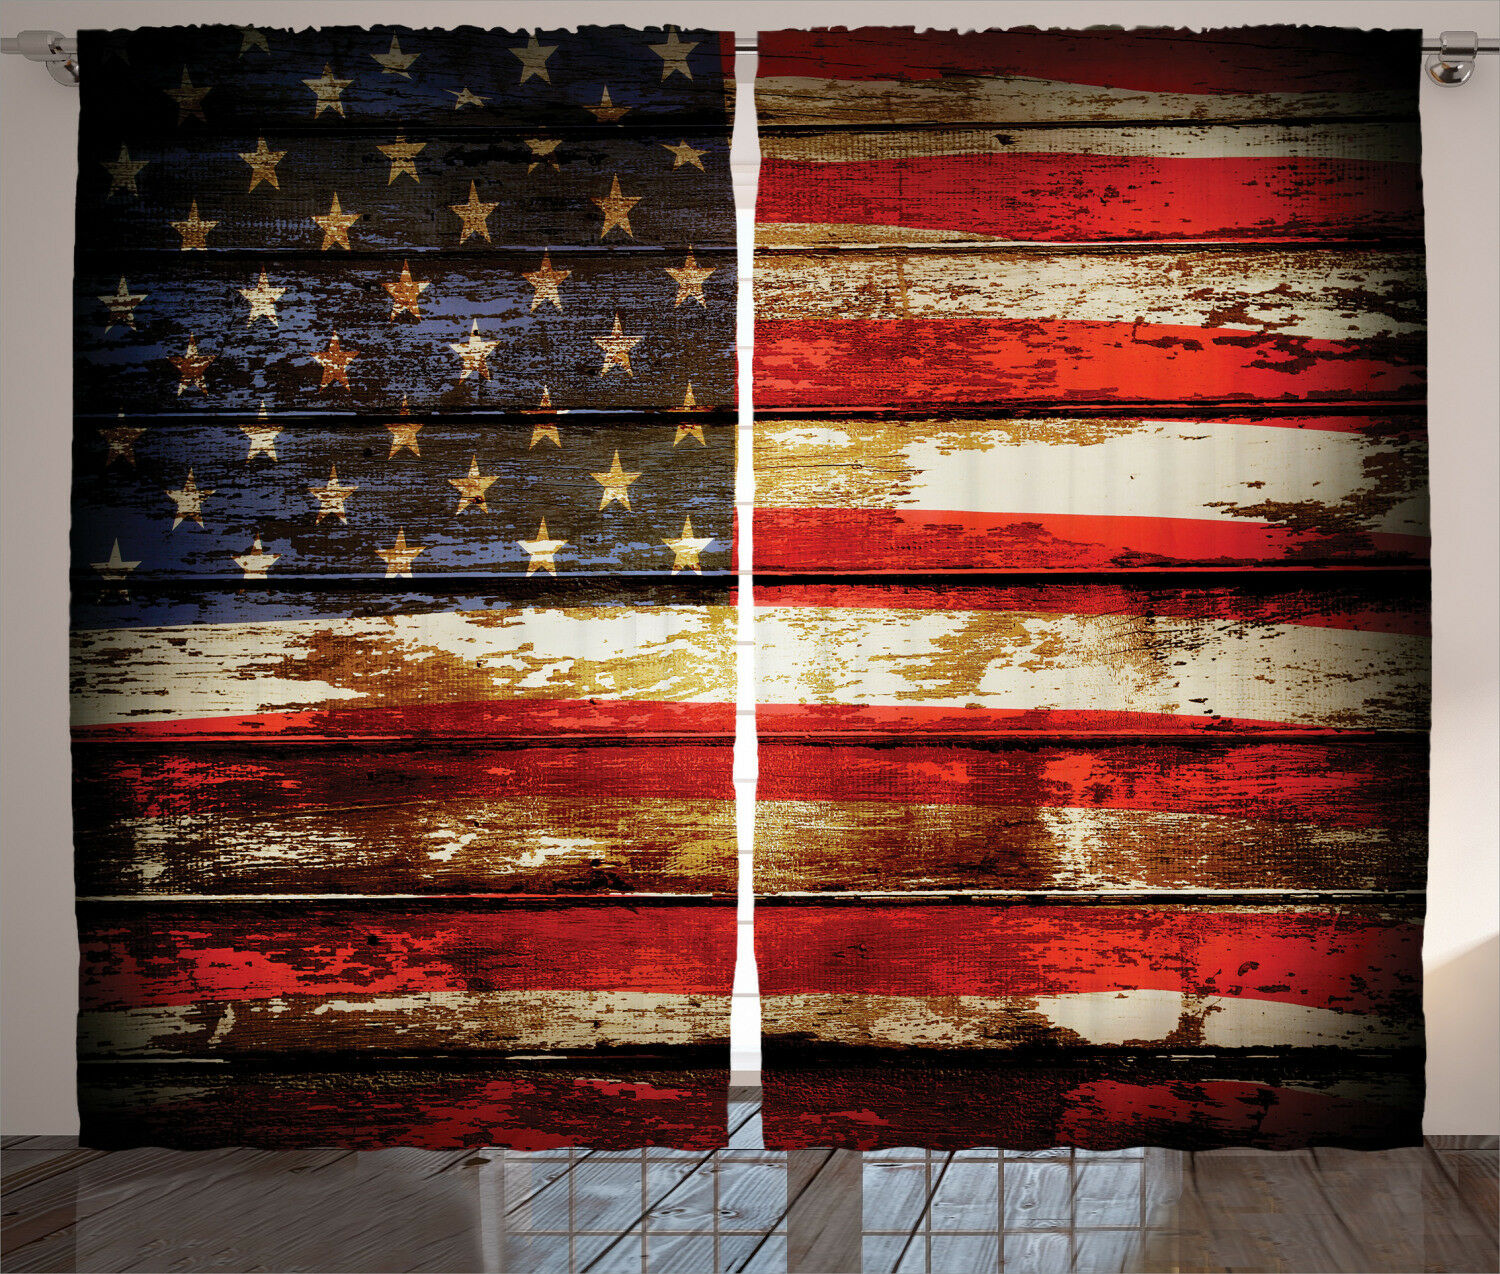 American Flag Flag Flag Curtains Vintage Wooden Window Drapes 2 Panel Set 108x84 Inches e48be0